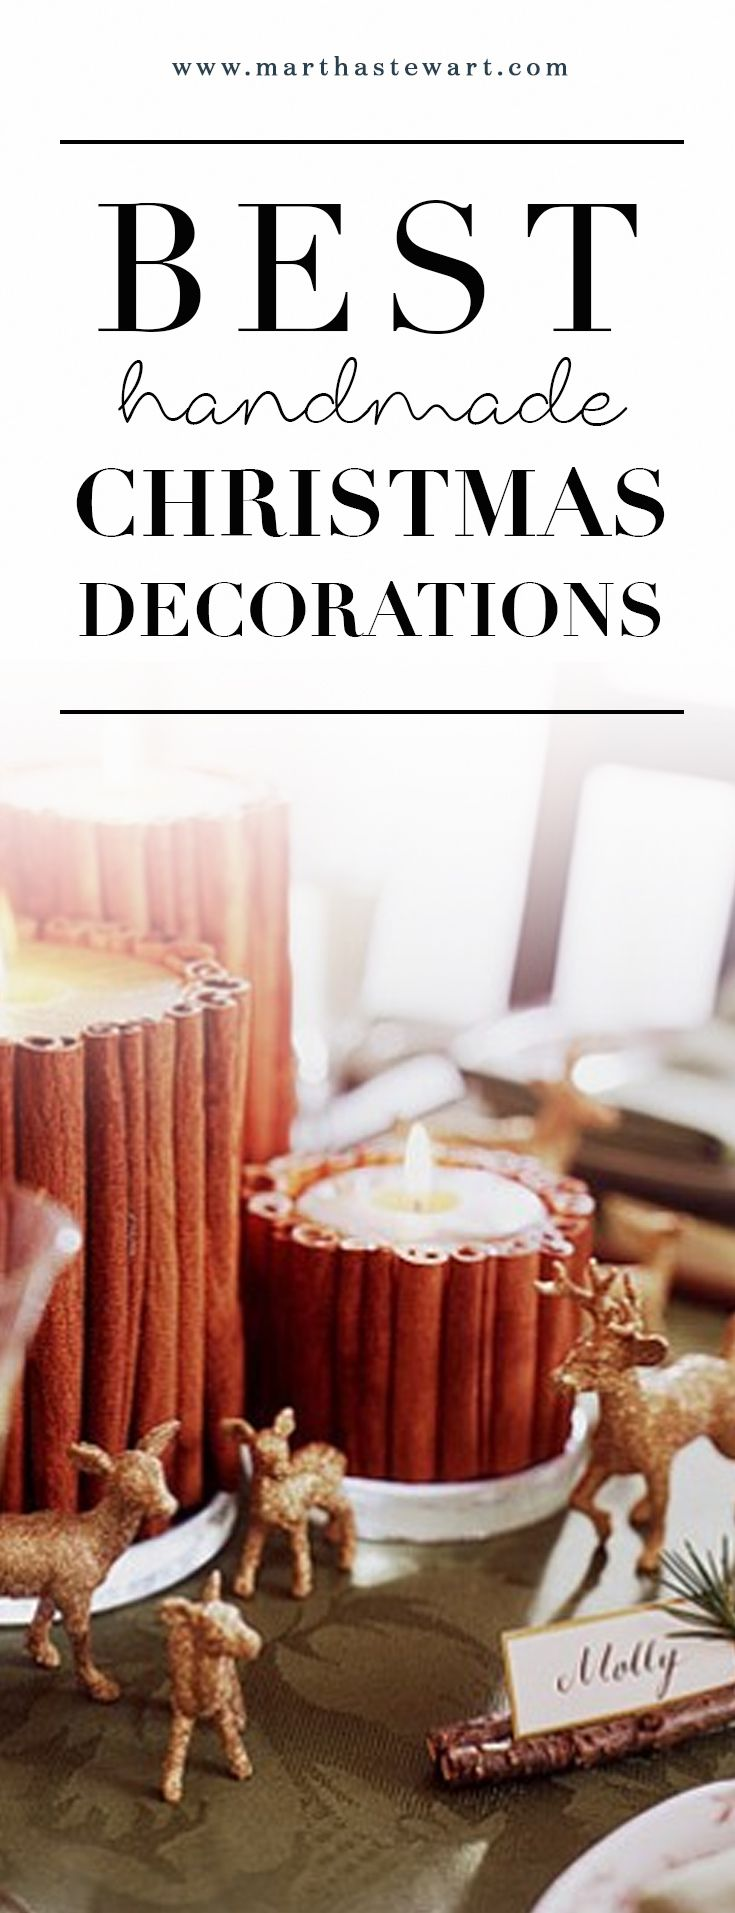 The Best Handmade Christmas Decorations  25 best ideas about Handmade  christmas decorations on Pinterest. Handmade Home Decoration Items Video   Kisekae Rakuen com